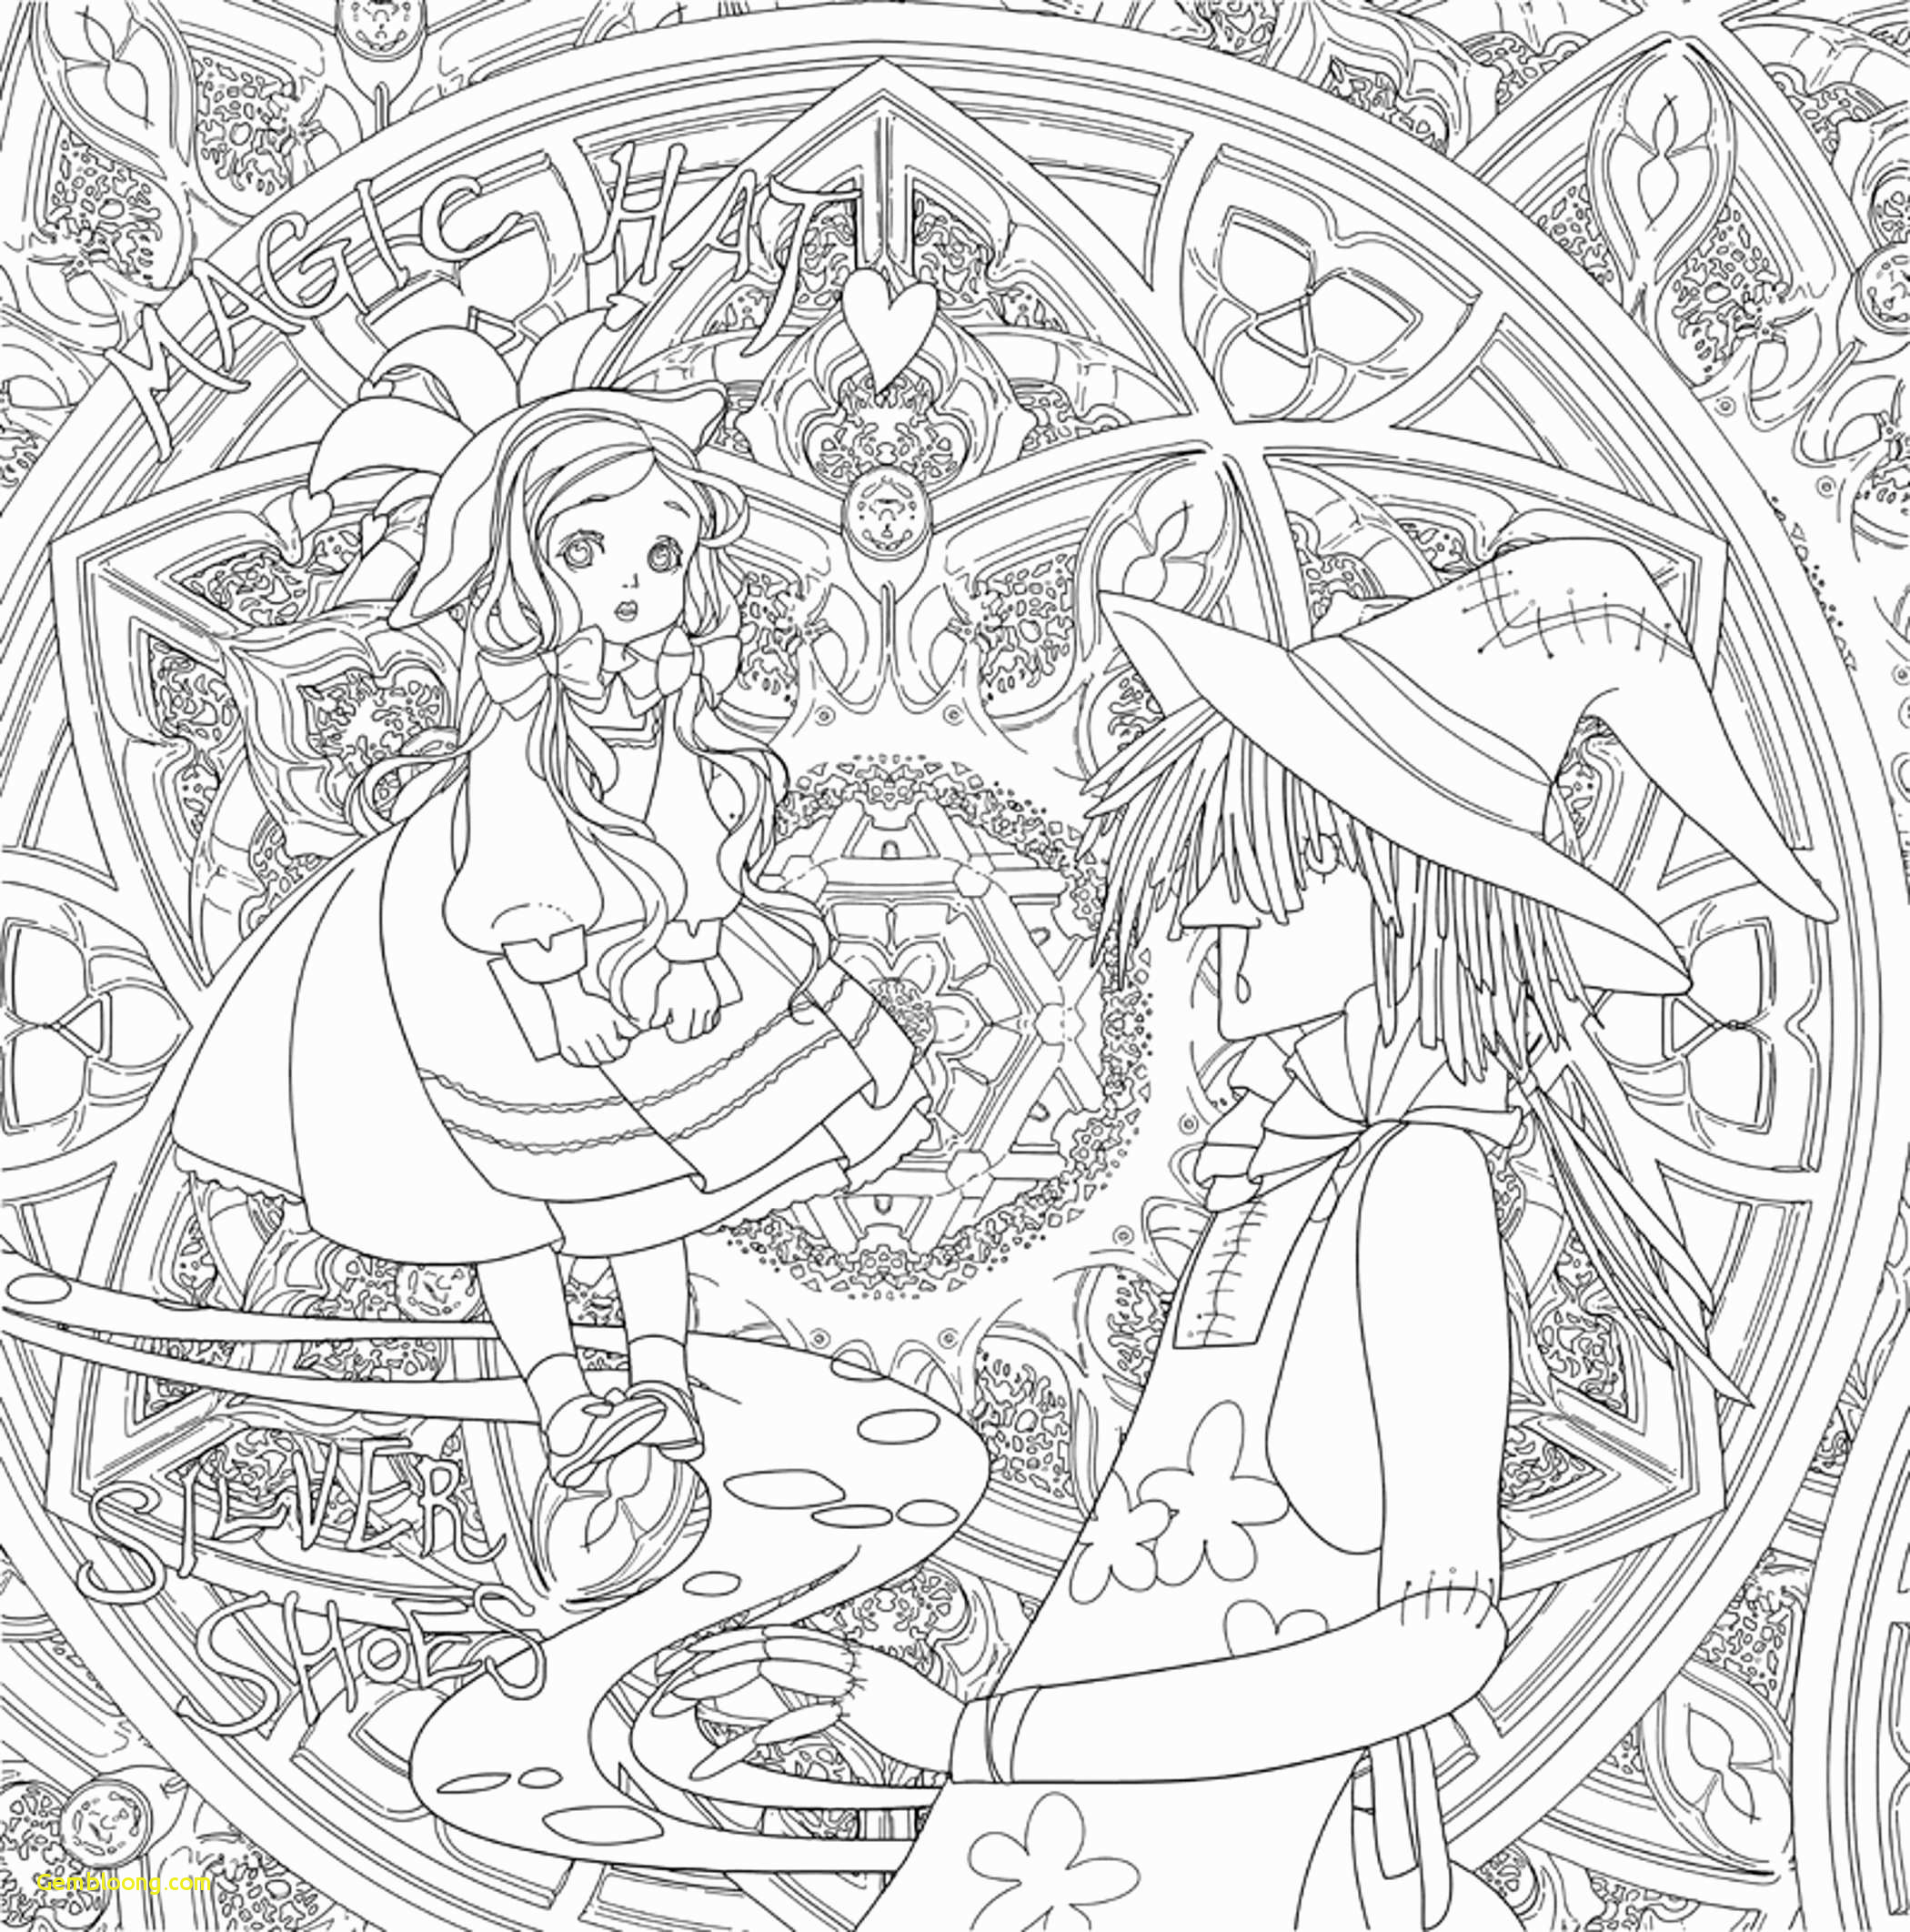 wizard of oz coloring wizard of oz coloring pages wizard oz coloring of